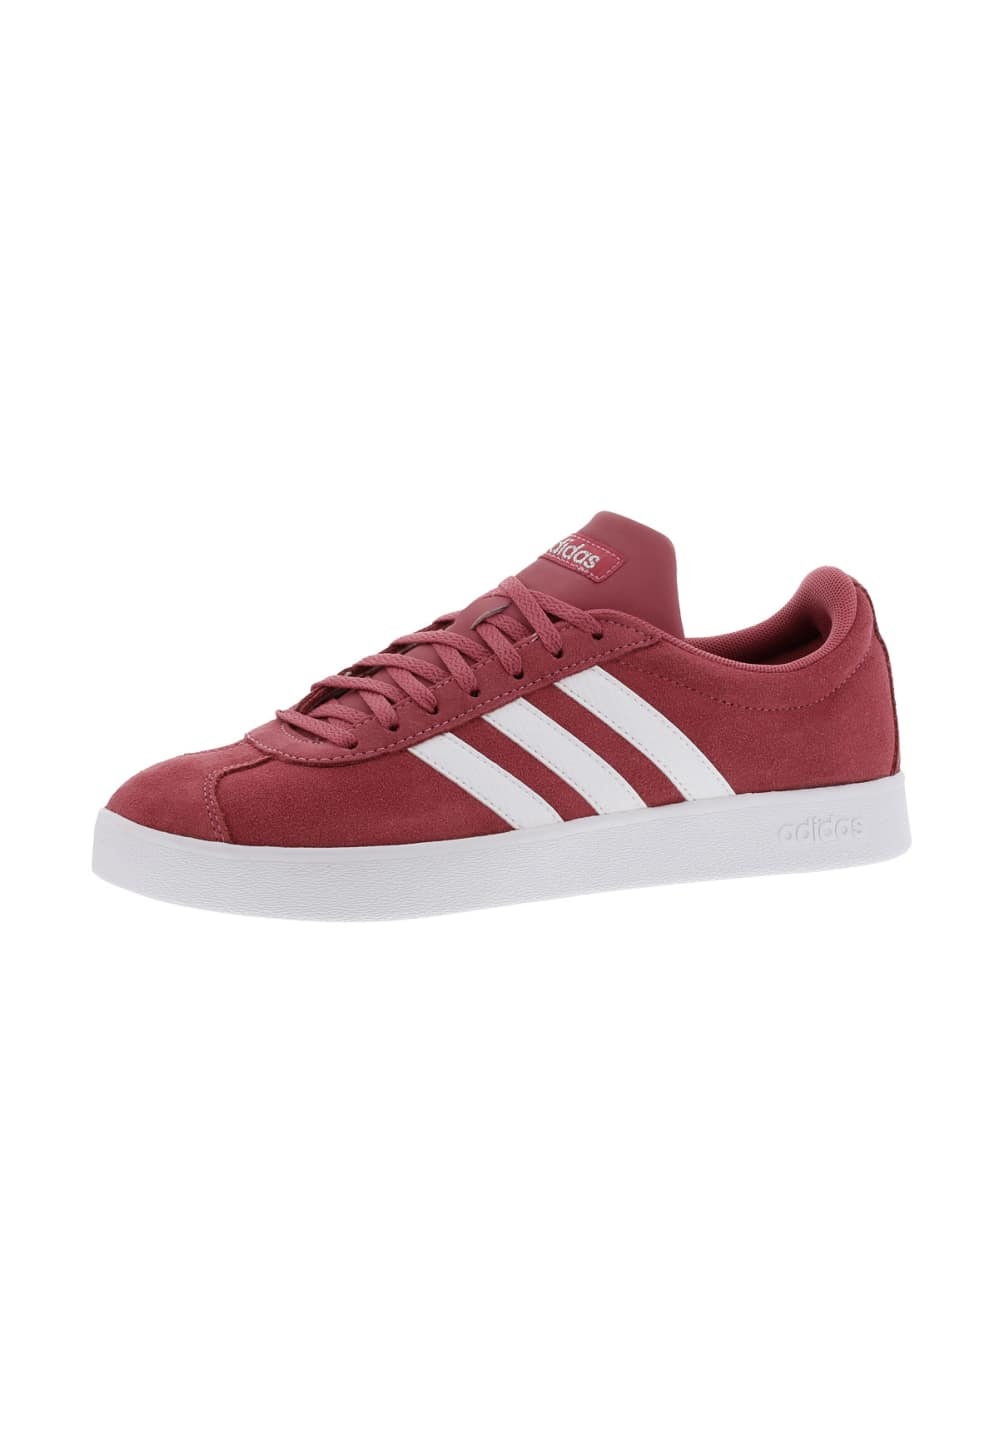 adidas neo VL Court 2.0 - Sneaker for Women - Red  7bfec5d6f4719